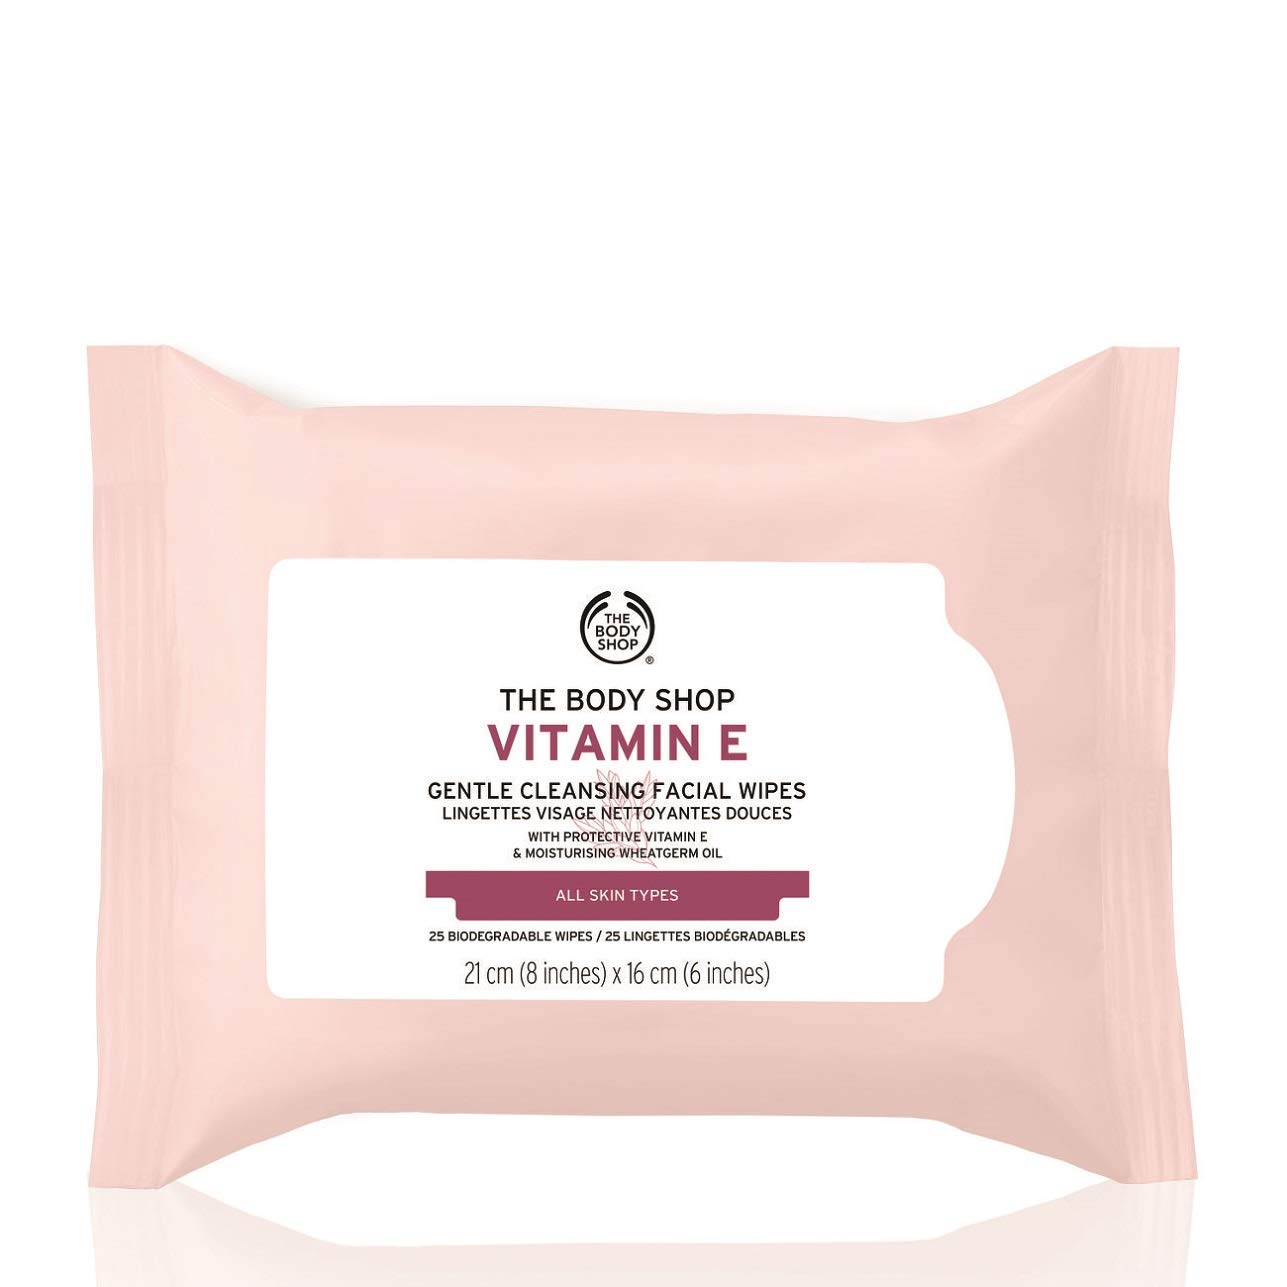 The Body Shop Vitamin E Gentle Facial Cleansing Wipes, 25 Wipes